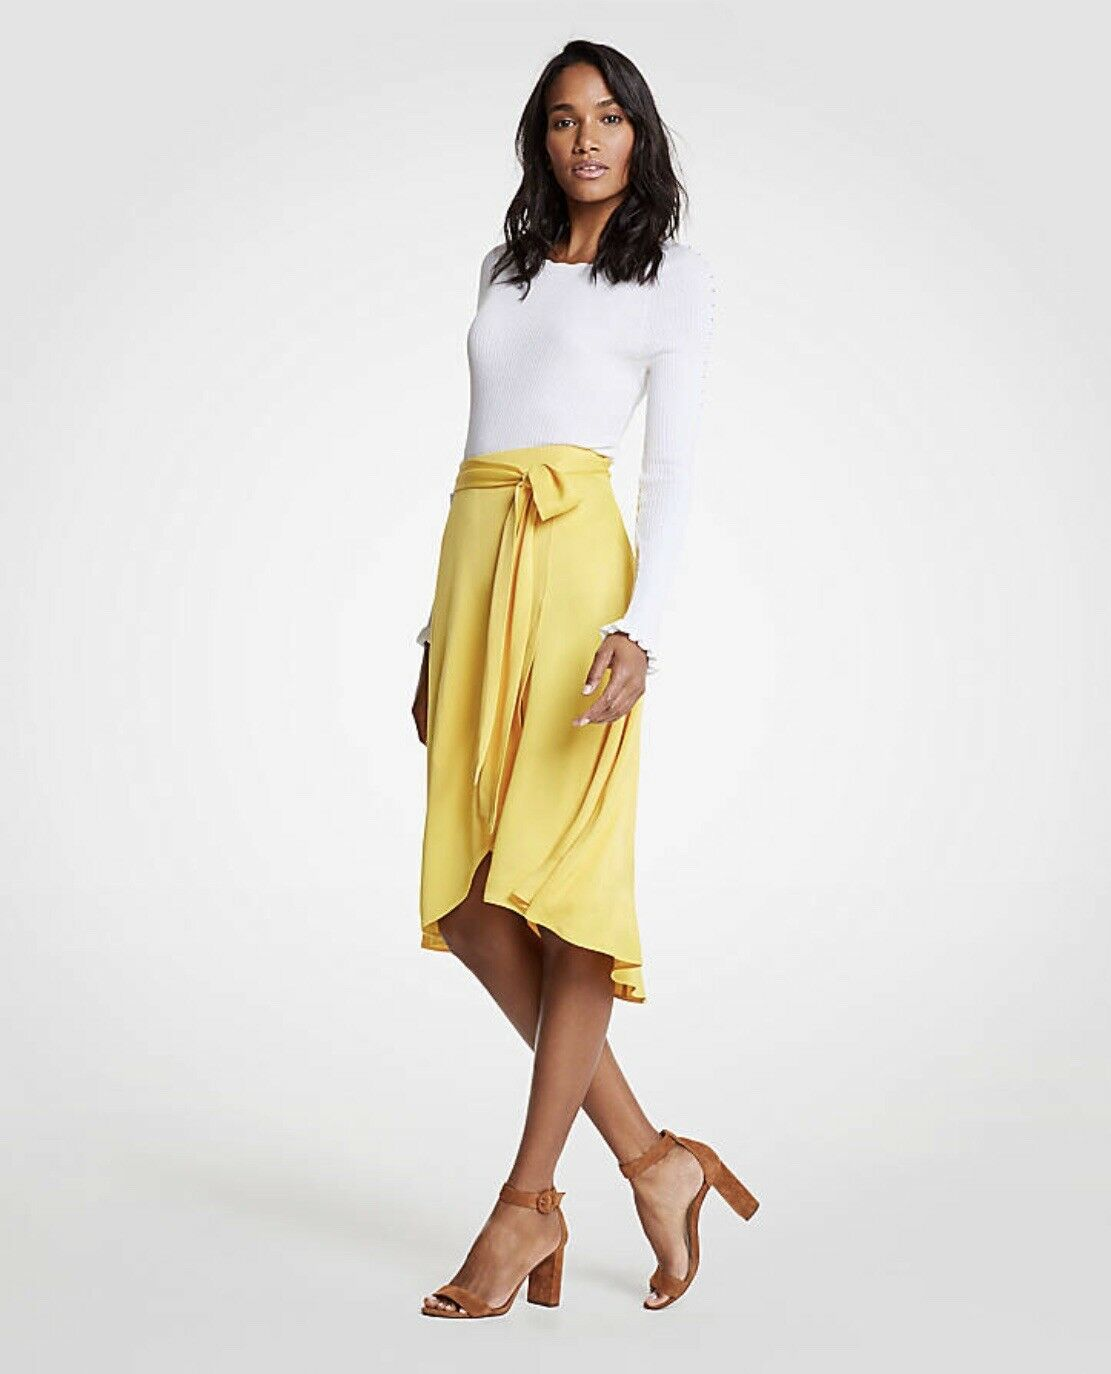 Ann Taylor New NWT - Tie Wrap Wait Maxi Skirt in Sunny Day Petite 10P SOLD OUT